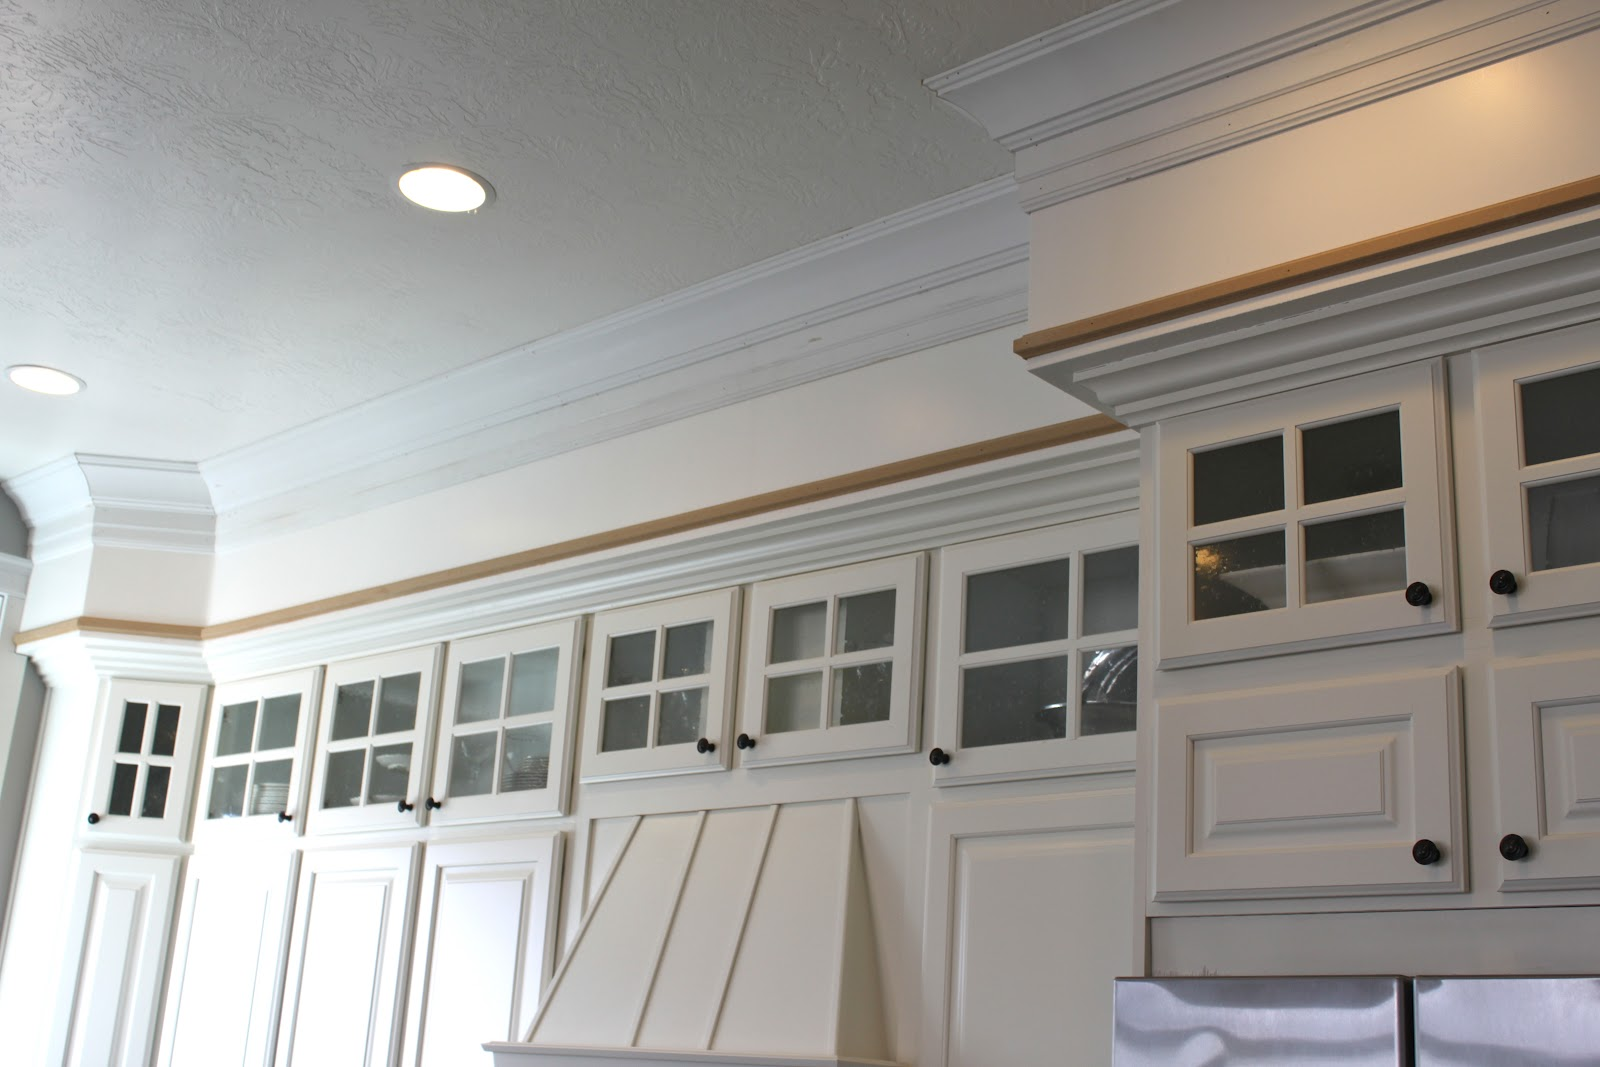 Low ceilings soffits and opening up your kitchen designeric for Bulkhead over kitchen cabinets